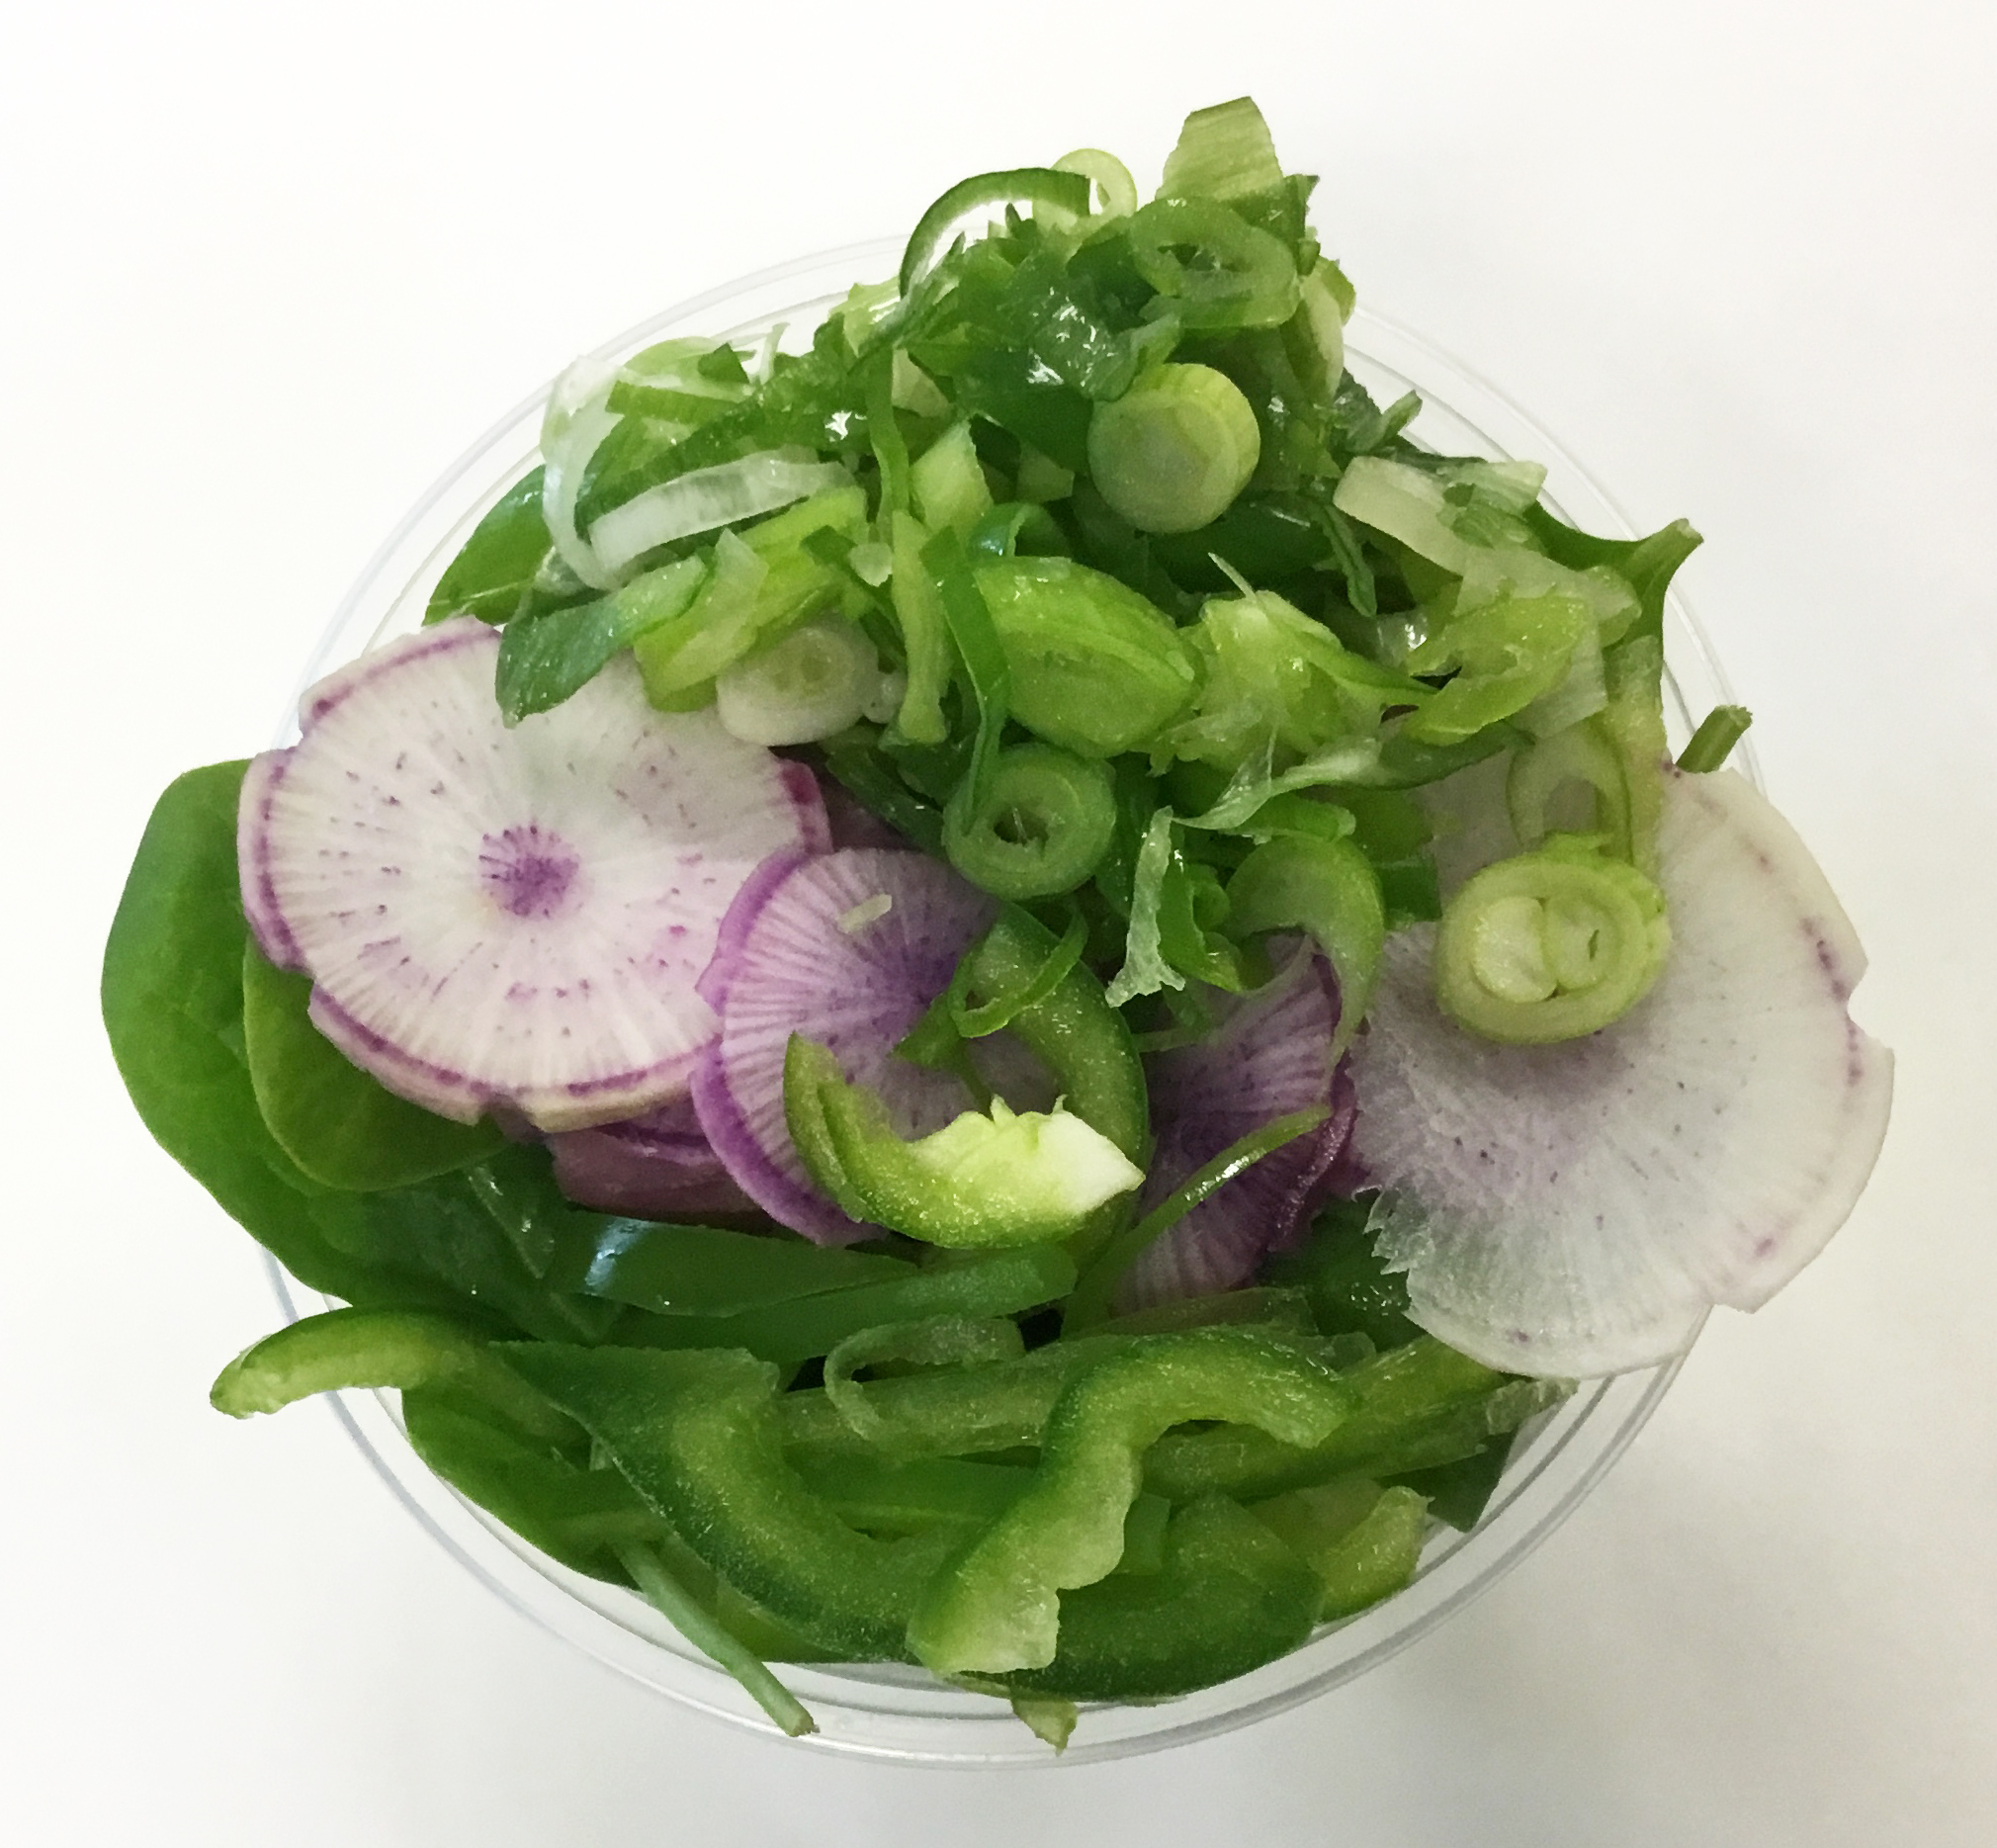 arugula, spinach, purple daikon, bell pepper and scallions